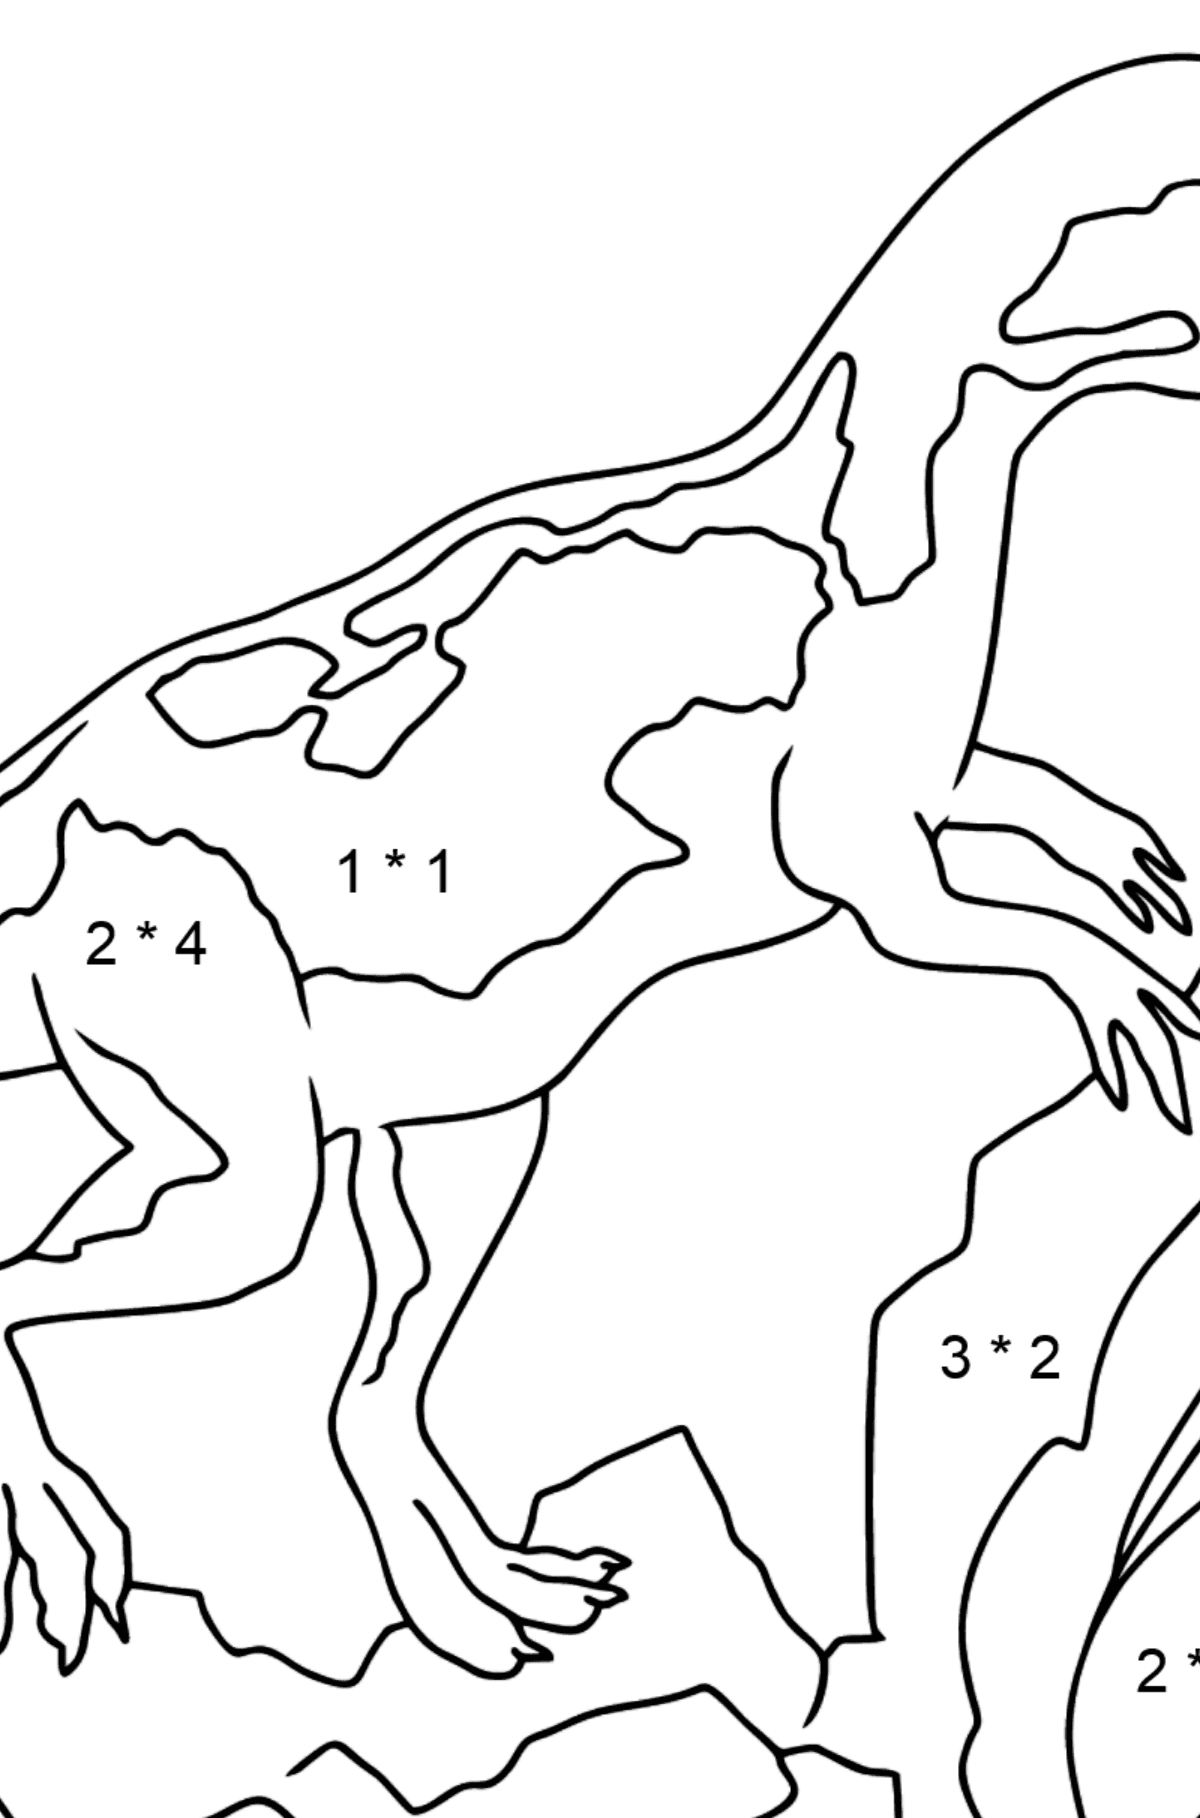 Coloring Page - A Dinosaur is Looking for Food - Math Coloring - Multiplication for Kids